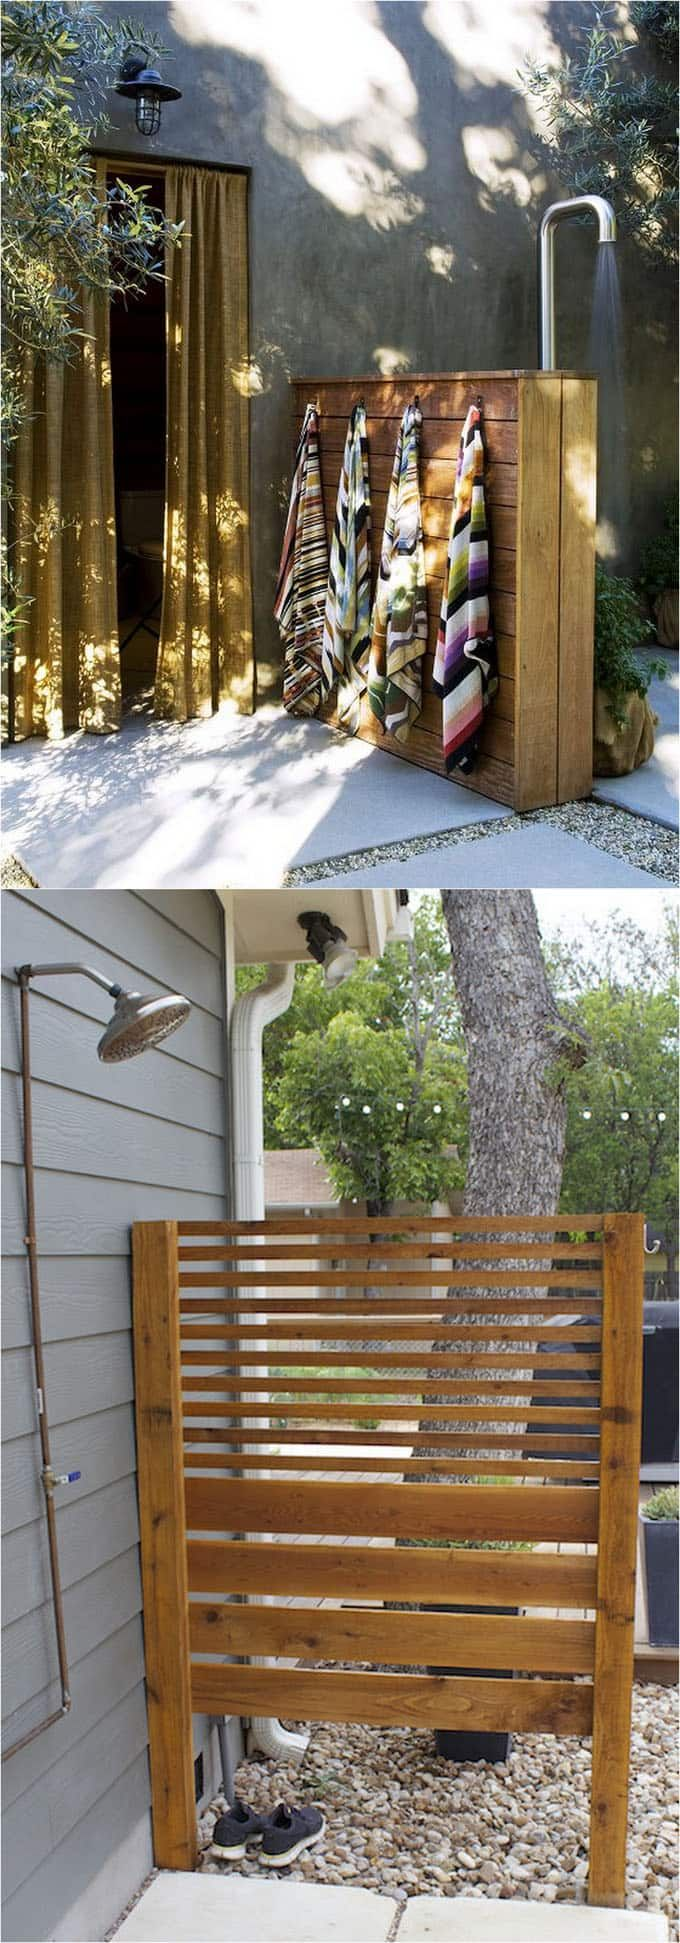 25 best ideas about outdoor showers on pinterest pool - How to make an outdoor shower ...